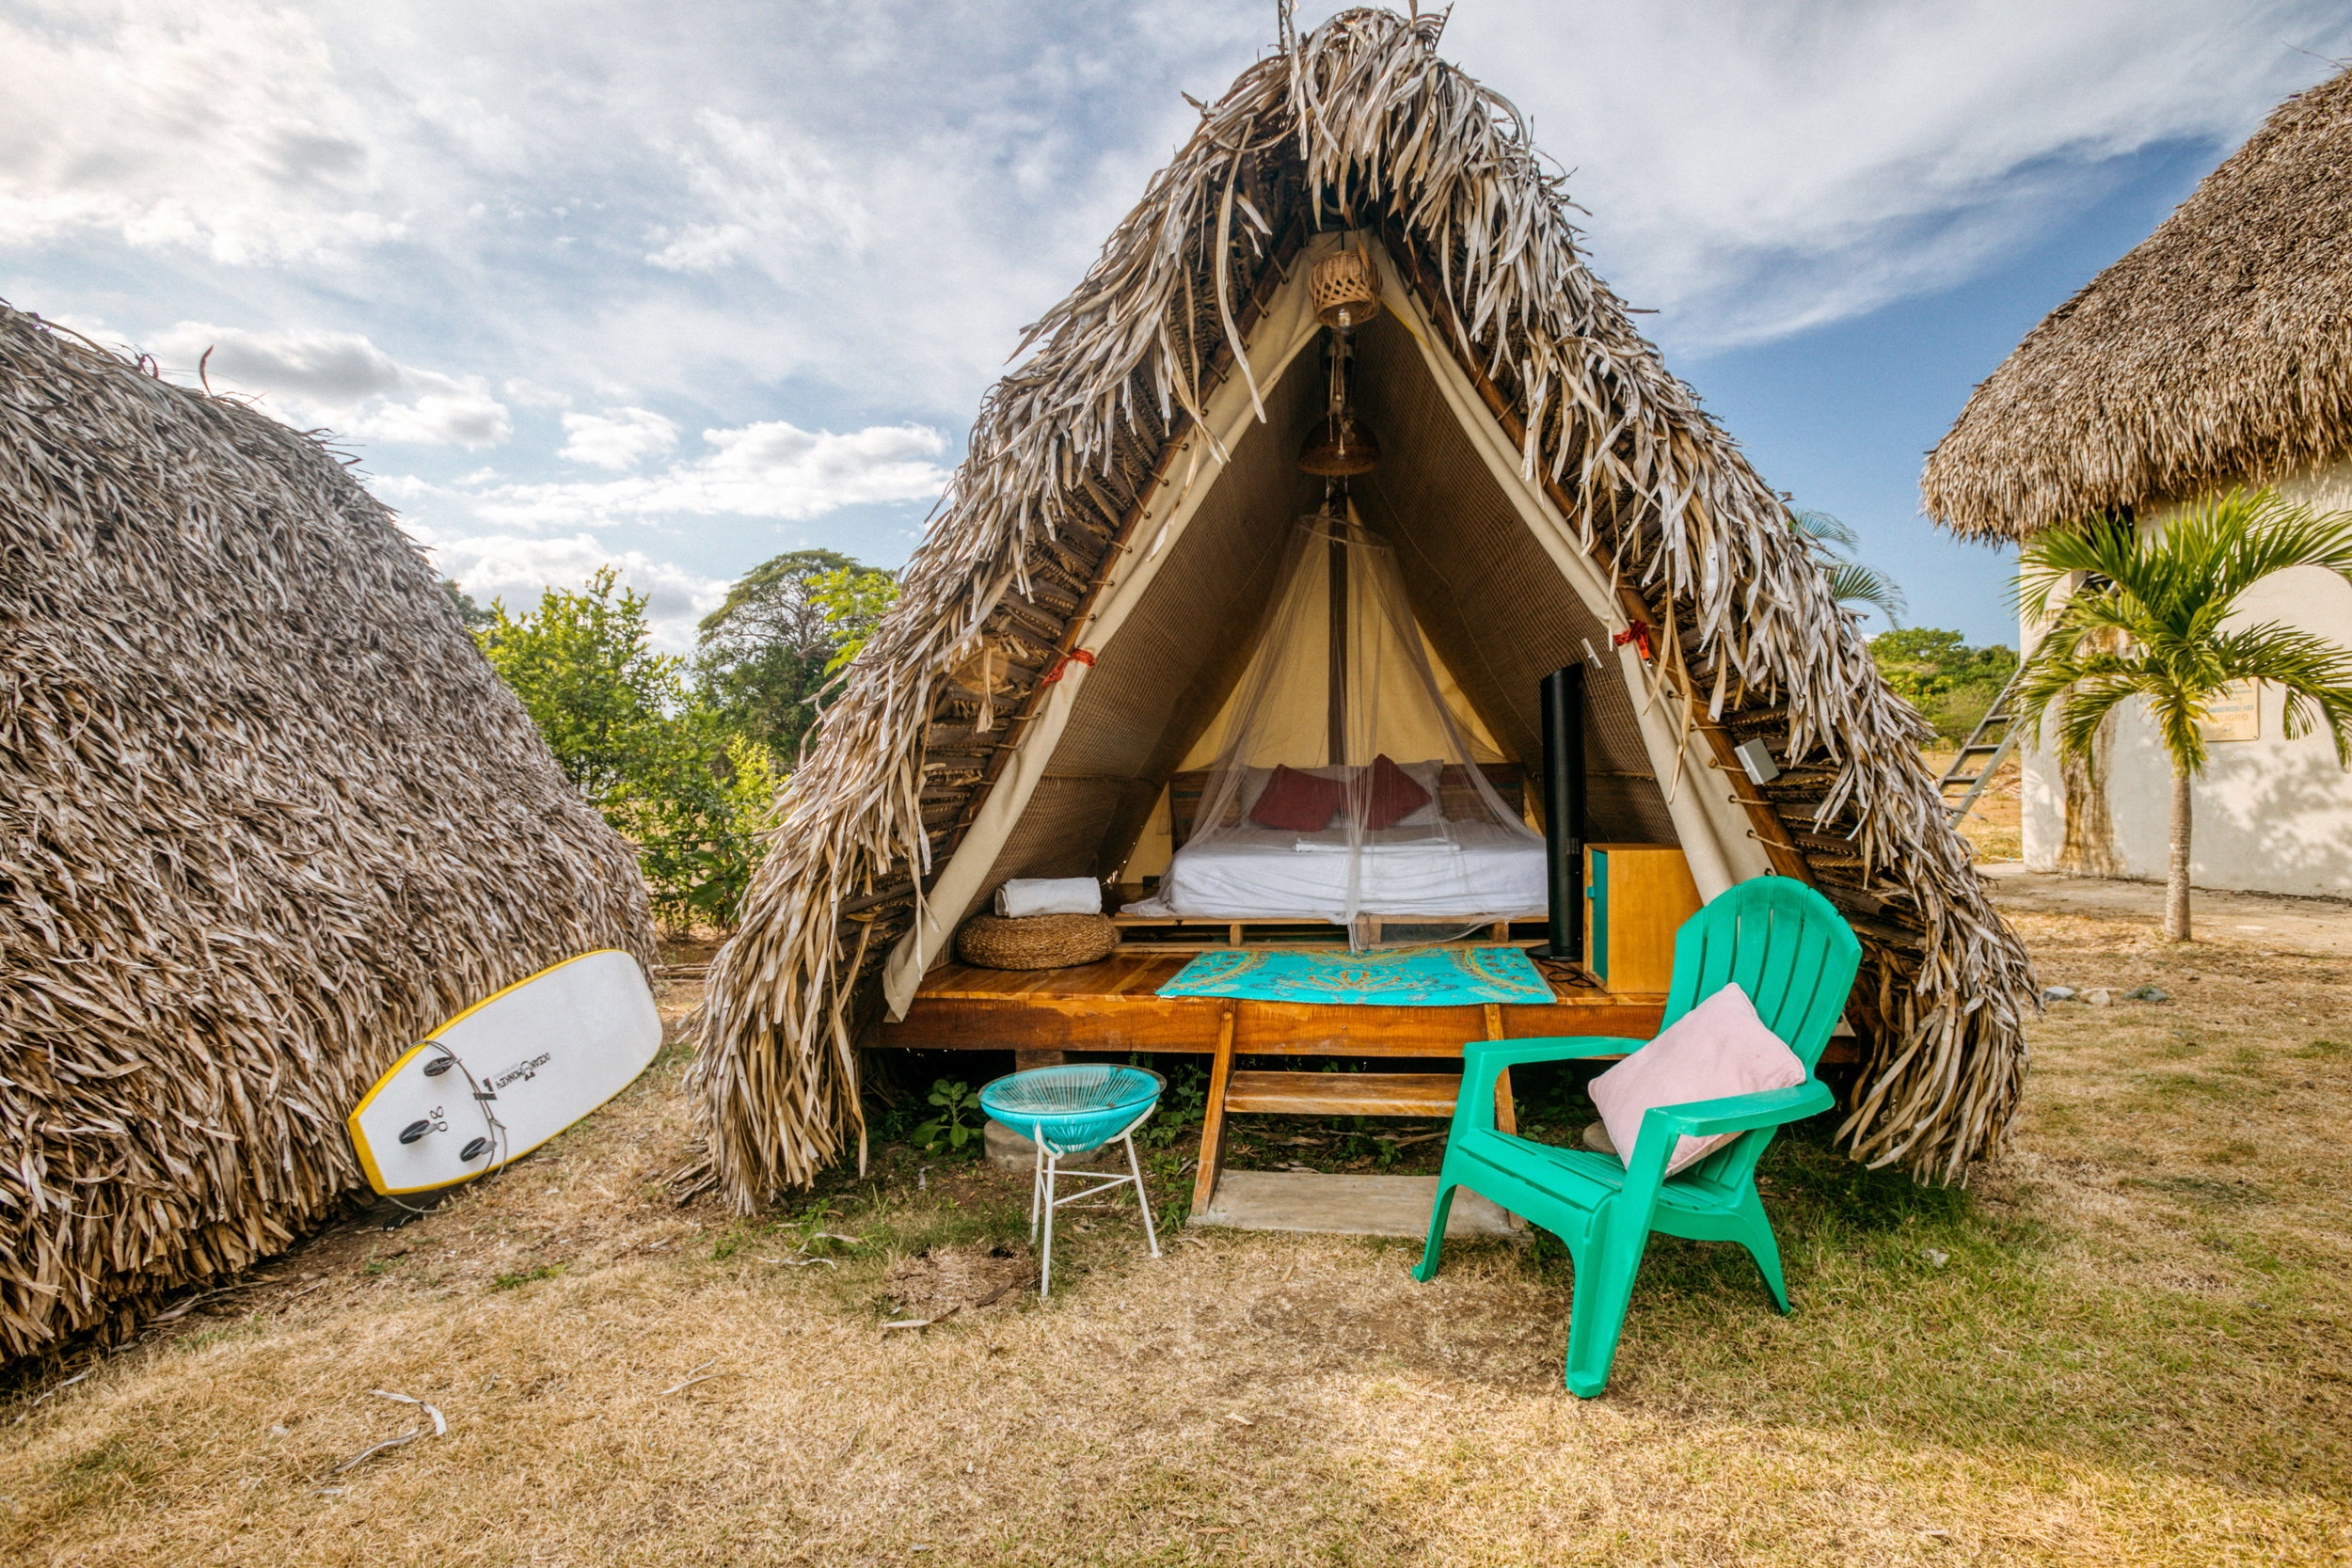 TEPEE TENTPACKAGE - EARLY BIRD*: $1.249,- / FULL PRICE: $1.399*Early Birds available until May 1stConnect with nature while sleeping in style. Teepees come with beds (sizes vary) and all the basic essentials (outlets, mosquito net, hot water, free toiletries, a fan, linens, lockers etc.). Roll out of bed and greet the your fellow Wanderbriefers from your personal sitting area. It's the perfect way to reflect on your Bootcamp day while falling asleep to the sound of the waves.